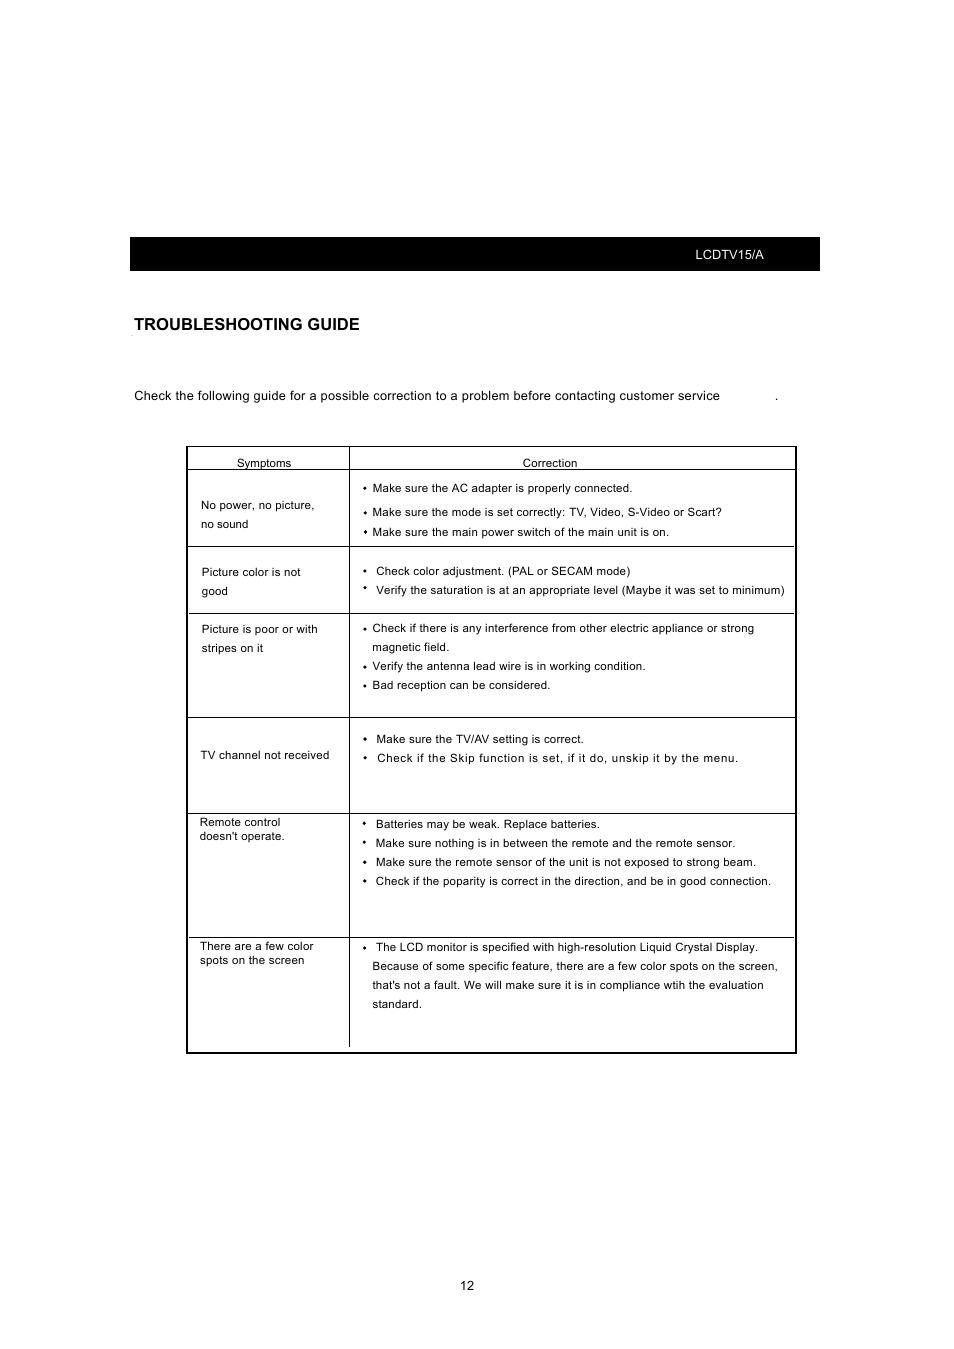 Troubleshooting guide | SONIQ LCDTV15 User Manual | Page 13 / 13